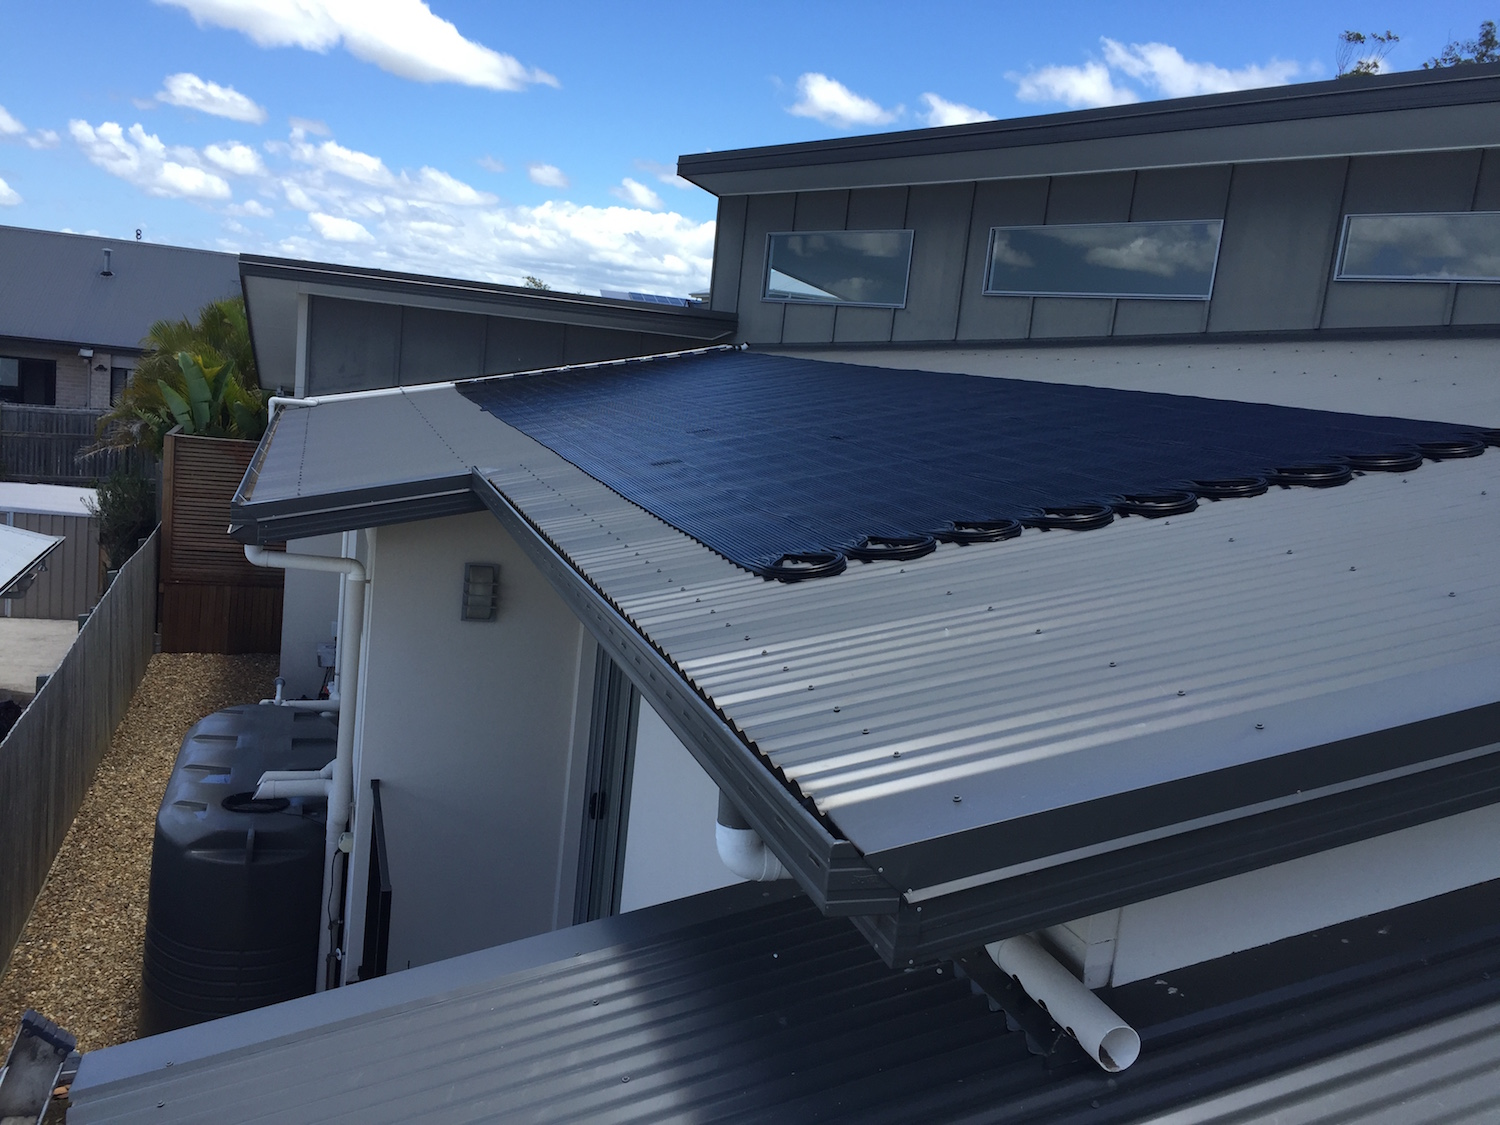 Solar pool heating panels on a roof